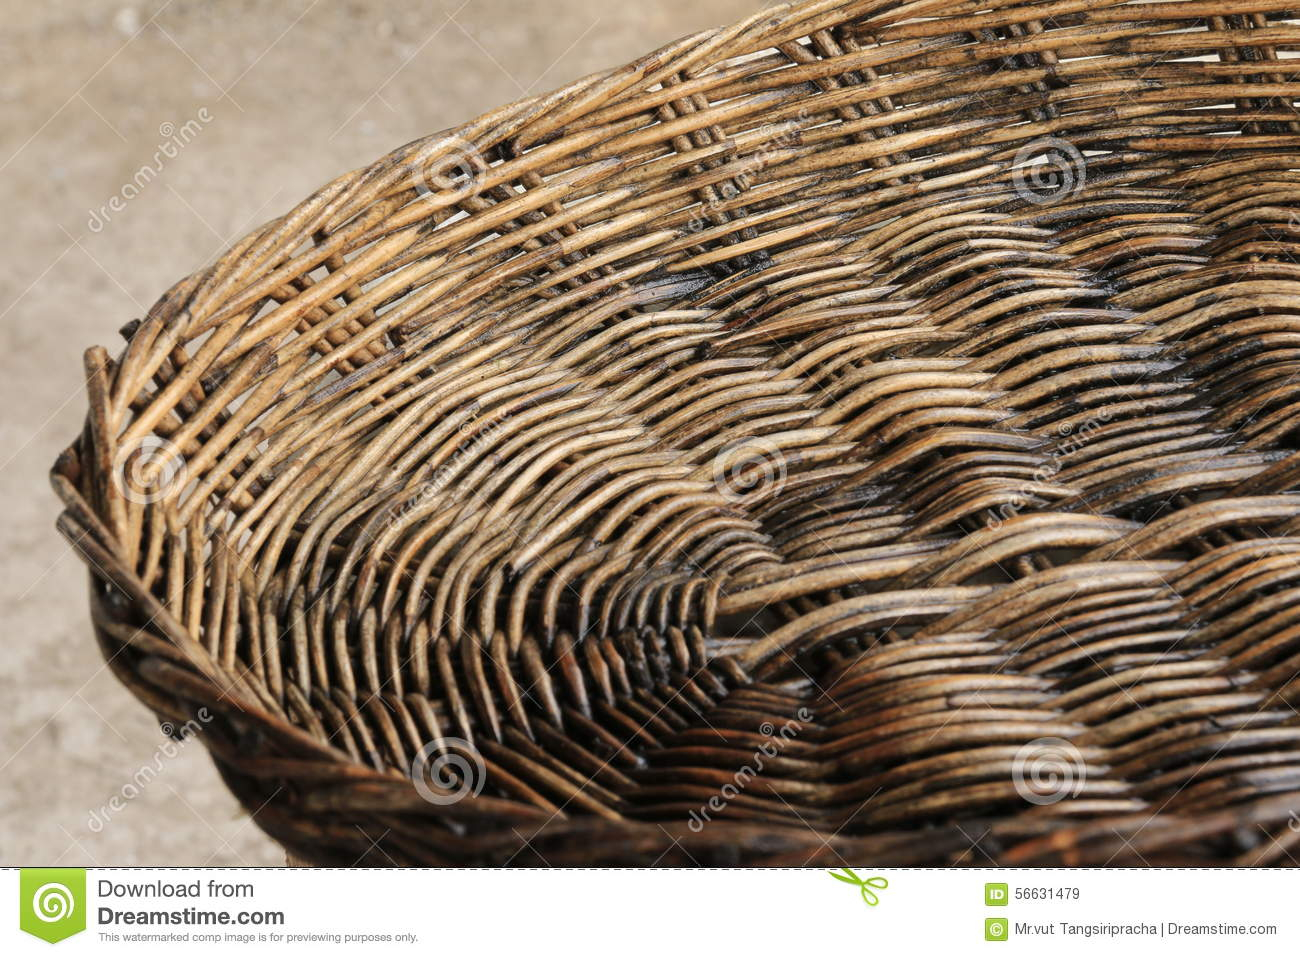 Basket Weaving With Reeds : Basket weaving reeds stock photo image